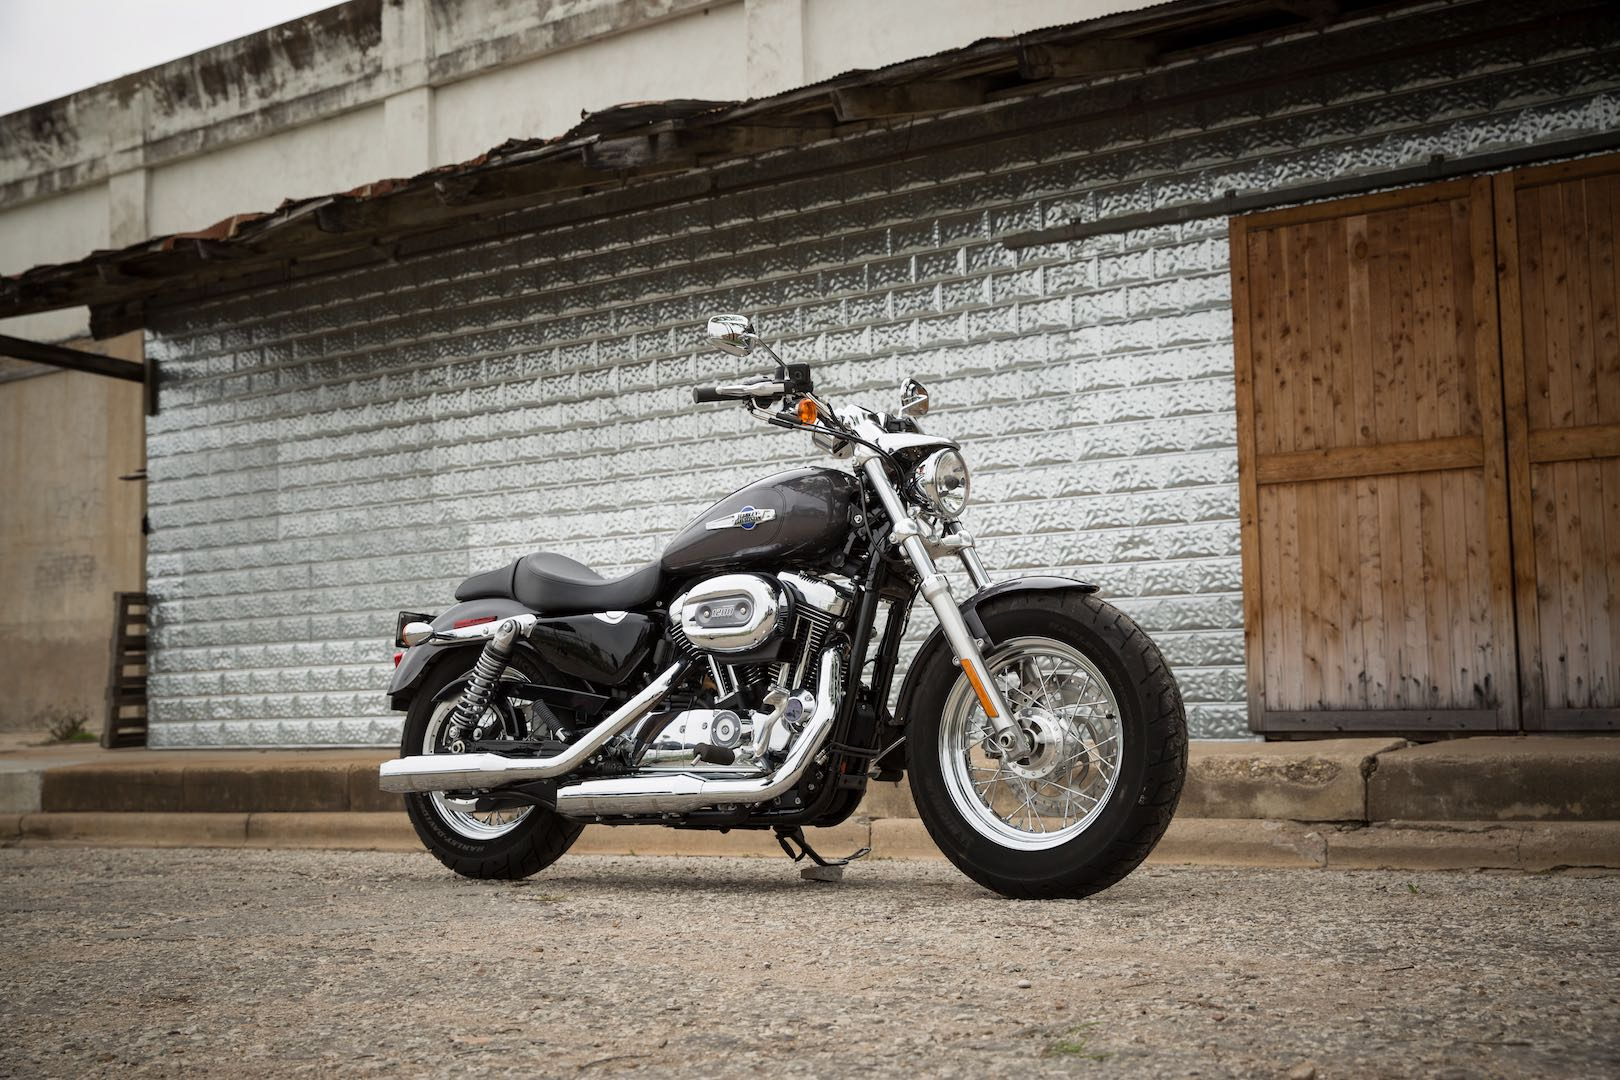 2017 Harley-Davidson Sportster 1200 Custom Buyer's Guide